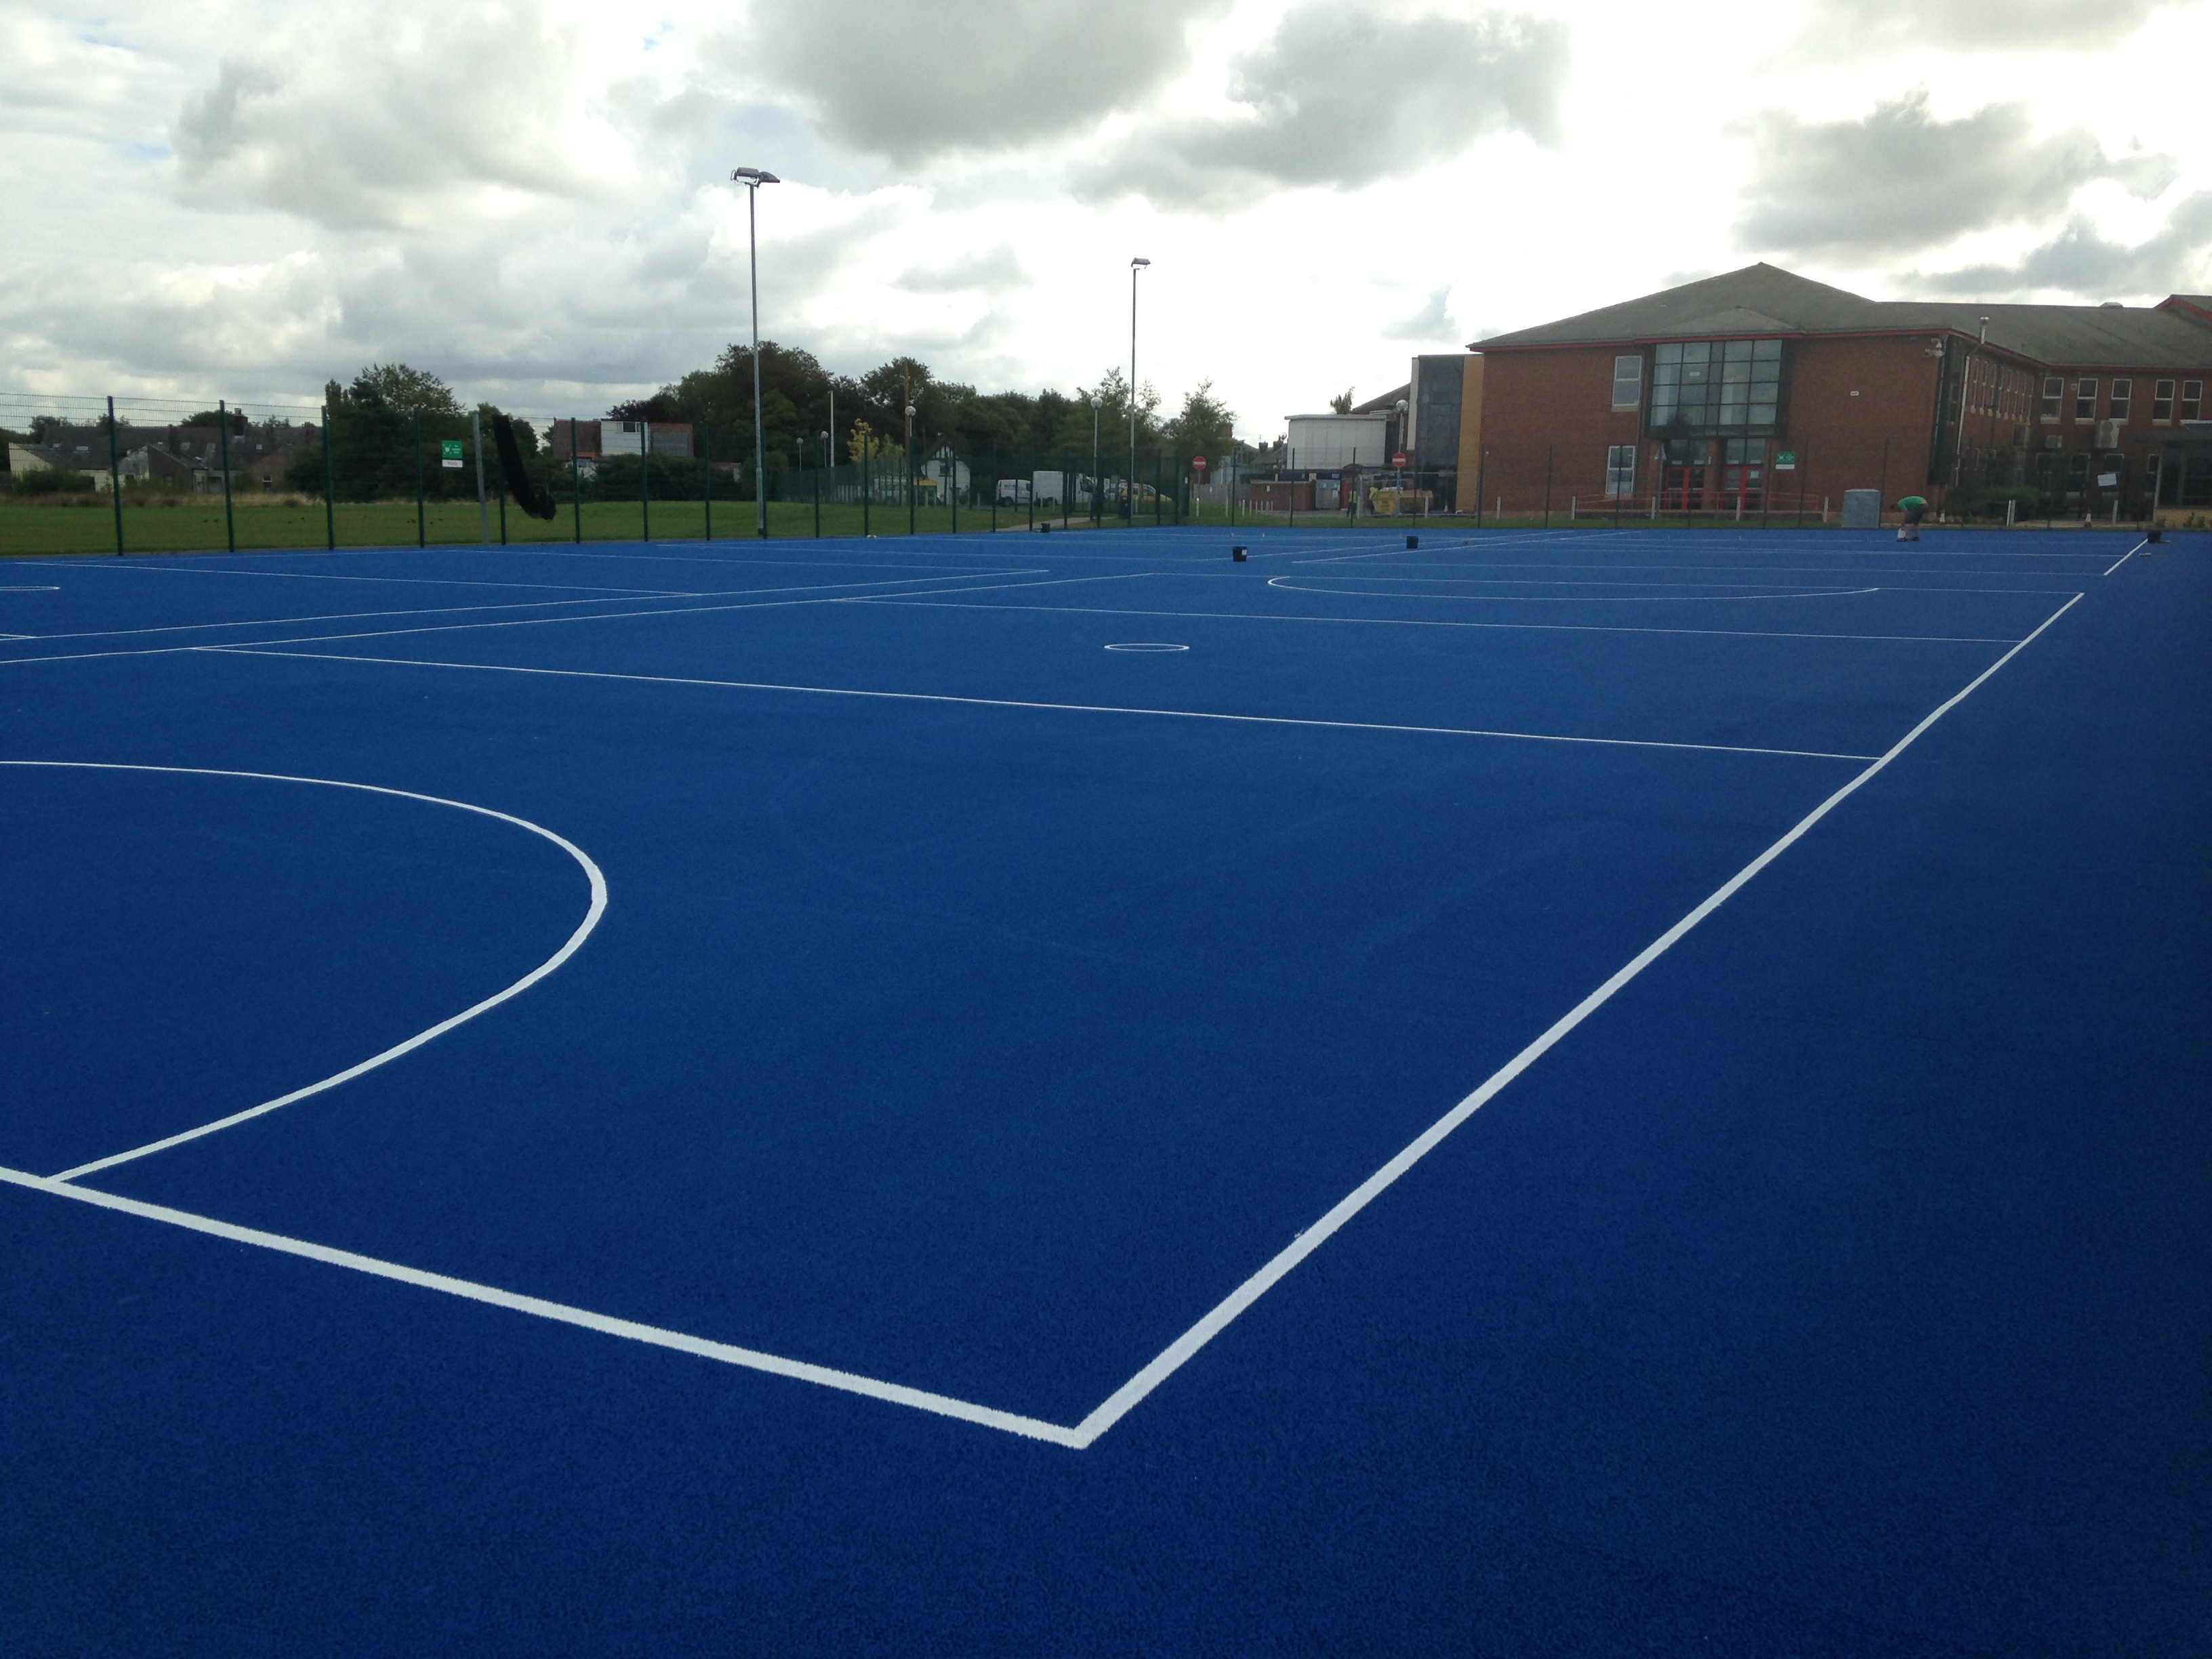 How Long Is A Football Pitch >> Thermoplastic Sports Courts vs Painted Line Markings - Sports and Safety Surfaces